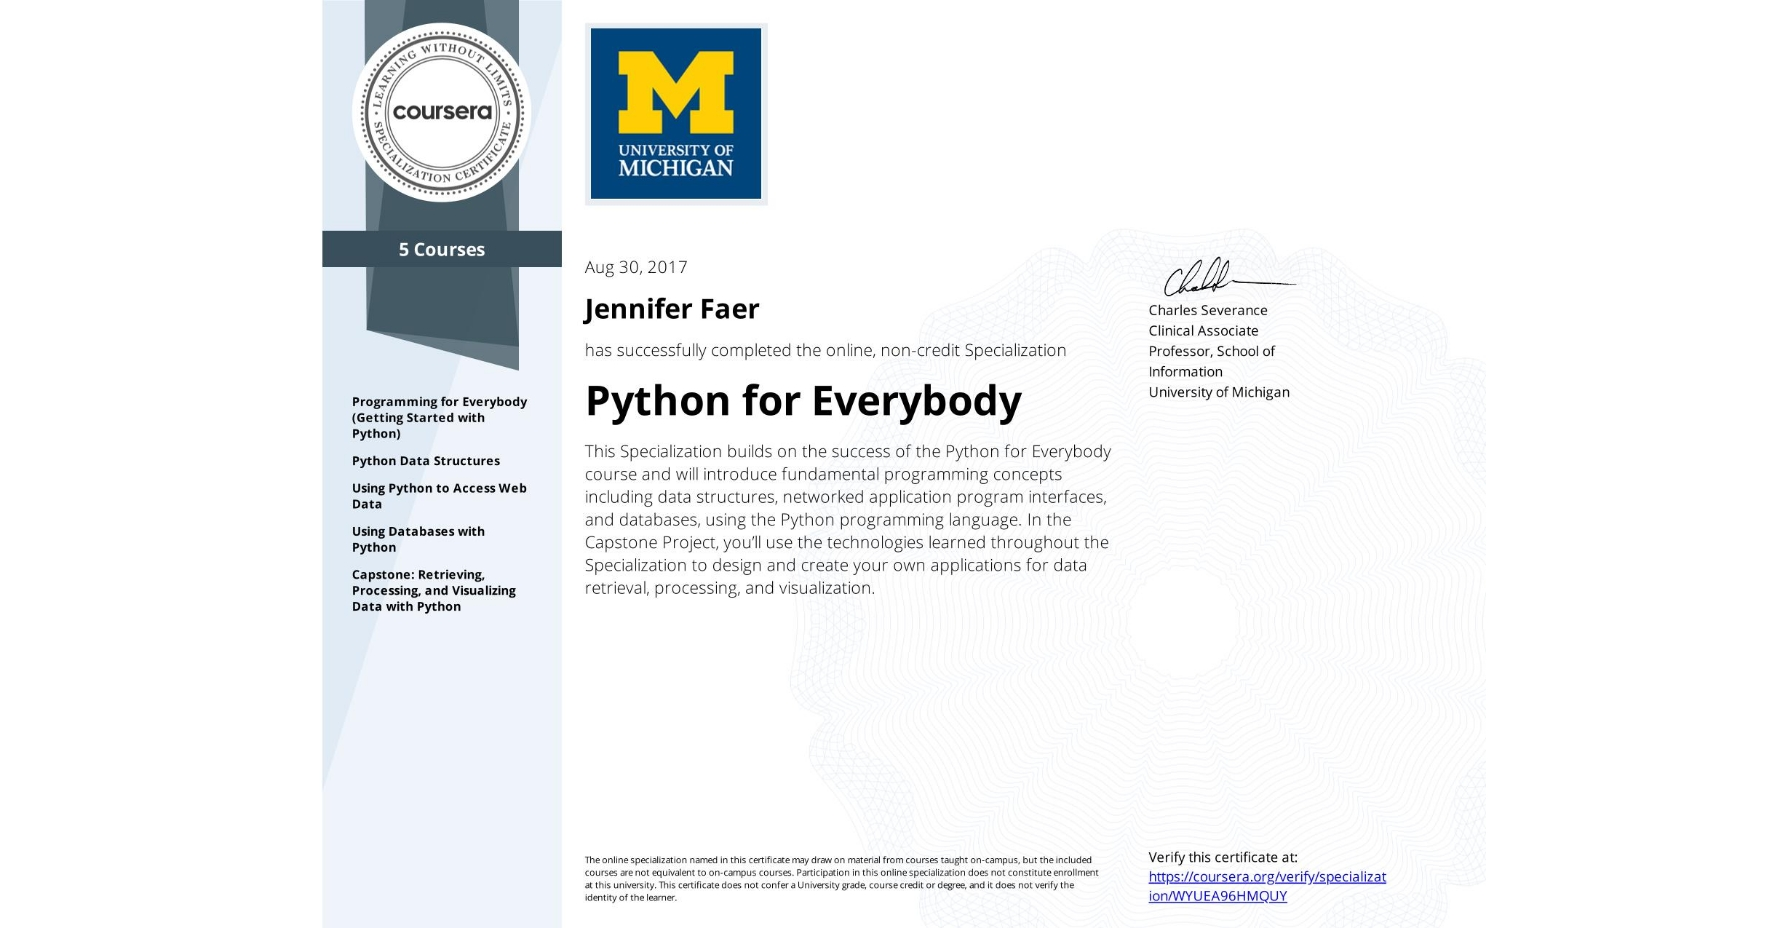 View certificate for Jennifer Faer, Python for Everybody, offered through Coursera. This Specialization builds on the success of the Python for Everybody course and will introduce fundamental programming concepts including data structures, networked application program interfaces, and databases, using the Python programming language. In the Capstone Project, you'll use the technologies learned throughout the Specialization to design and create your own applications for data retrieval, processing, and visualization.